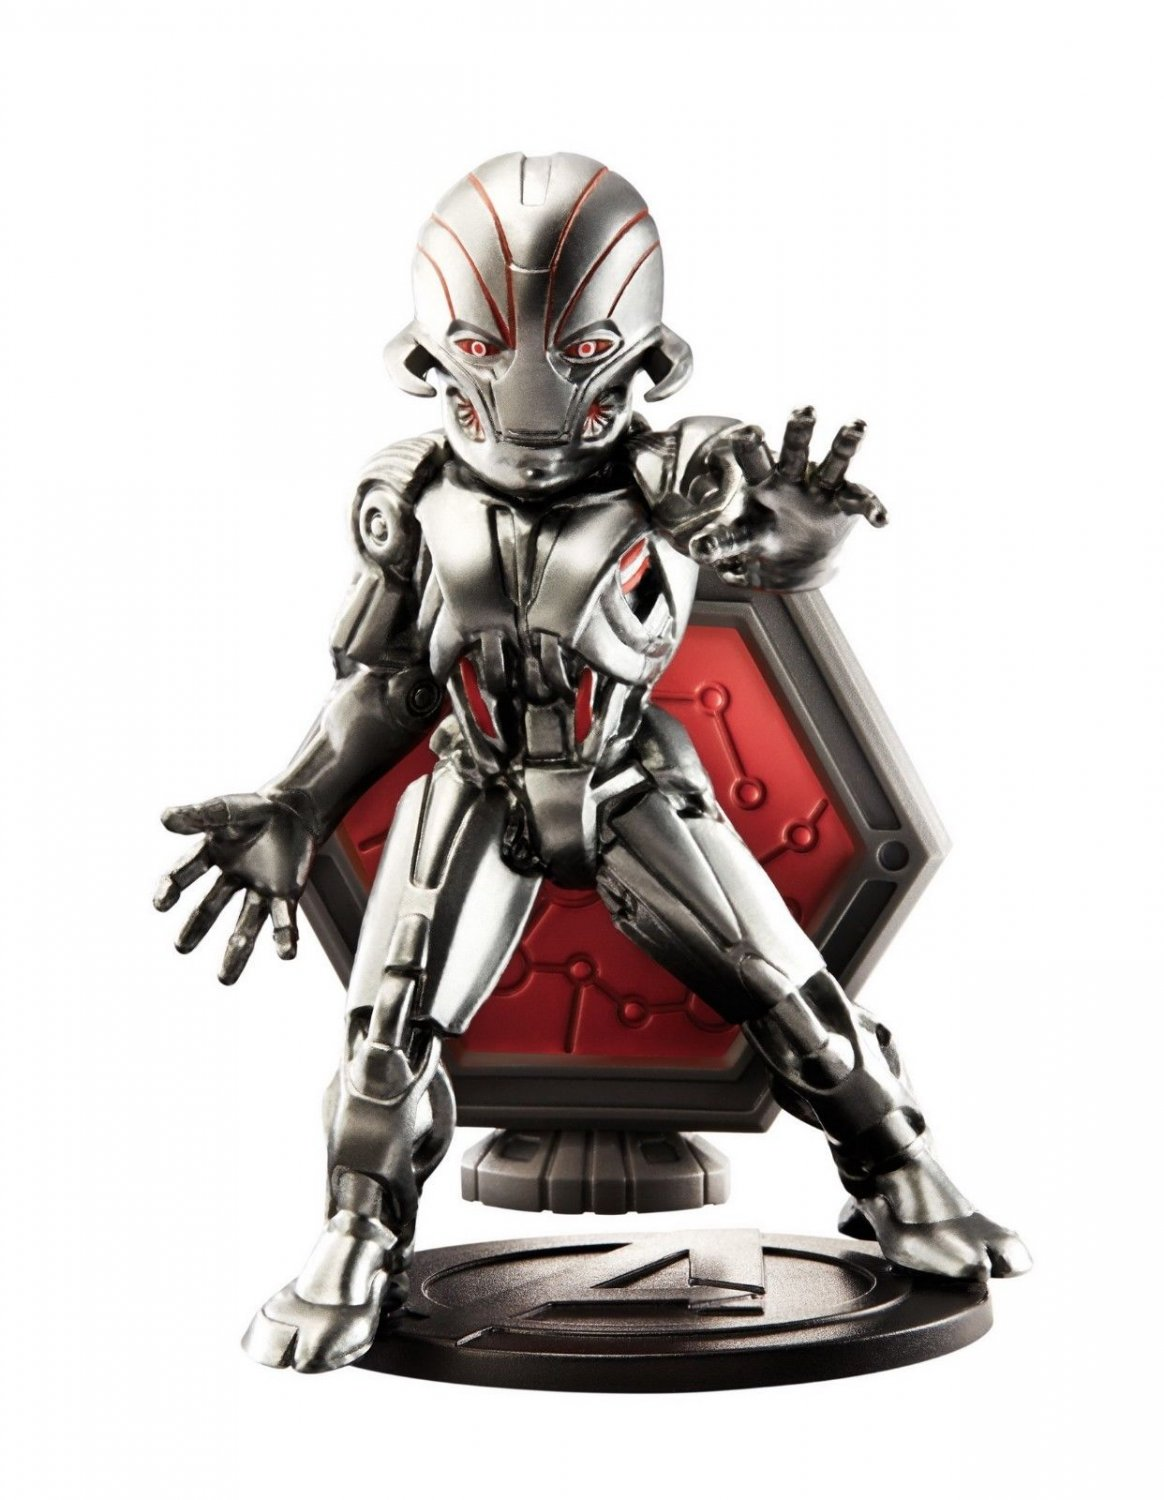 7-11 HK Marvel Avengers Heros Age of Ultron Figurines - Ultron